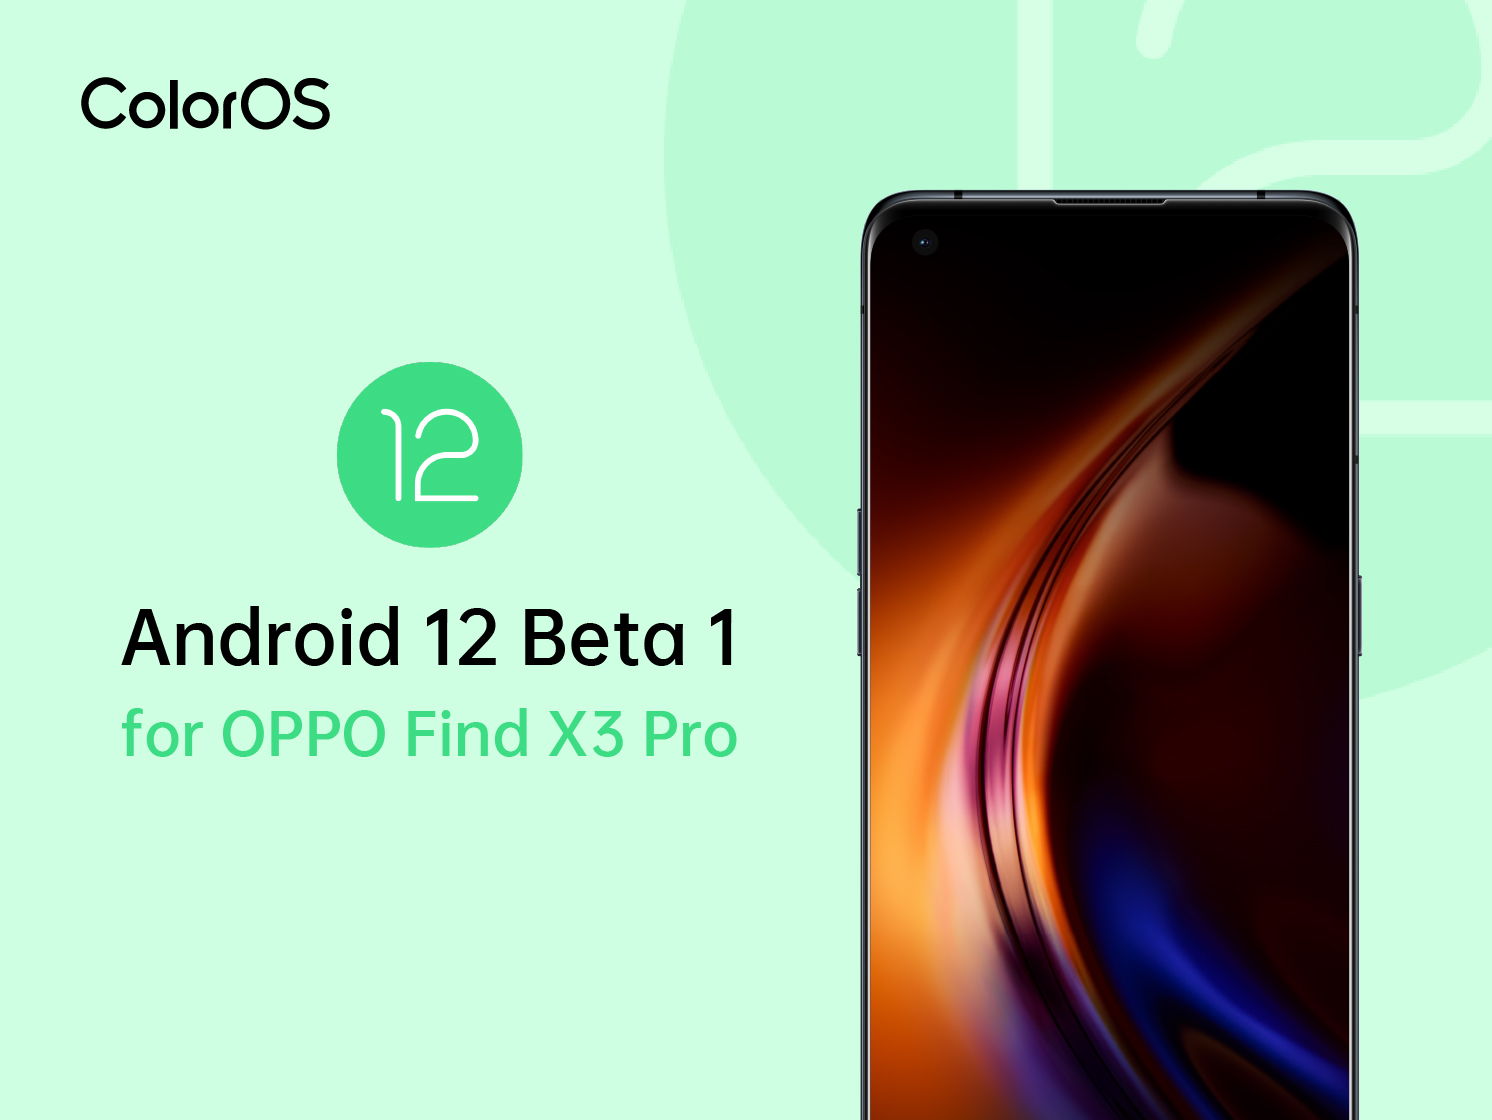 Android 12 Developers Preview for OPPO Find X3 Pro | Experience Latest Android 12 On OPPO Phone